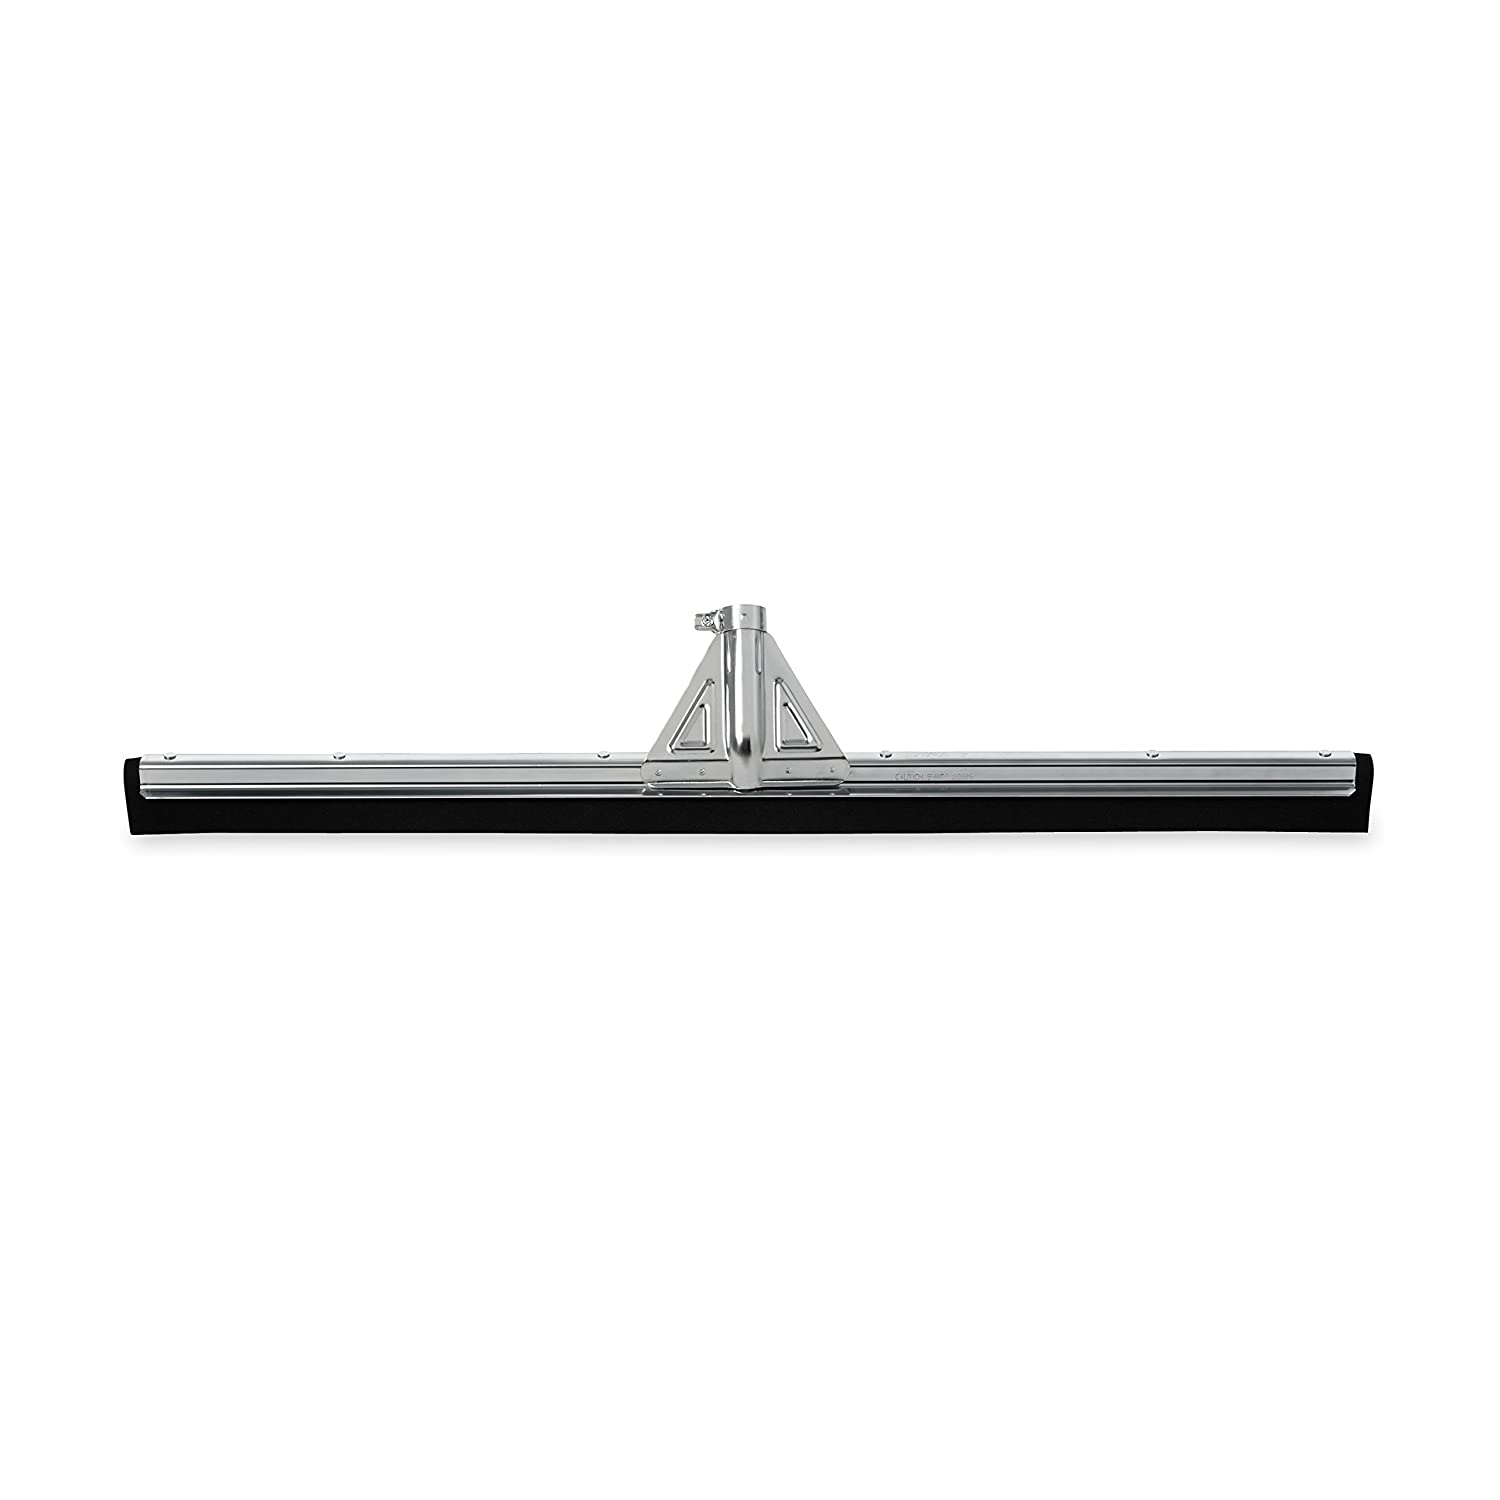 18-inch Dual Moss FG9C2600BLA Rubbermaid Commercial Products Black Rubbermaid Commercial Standard Floor Squeegee